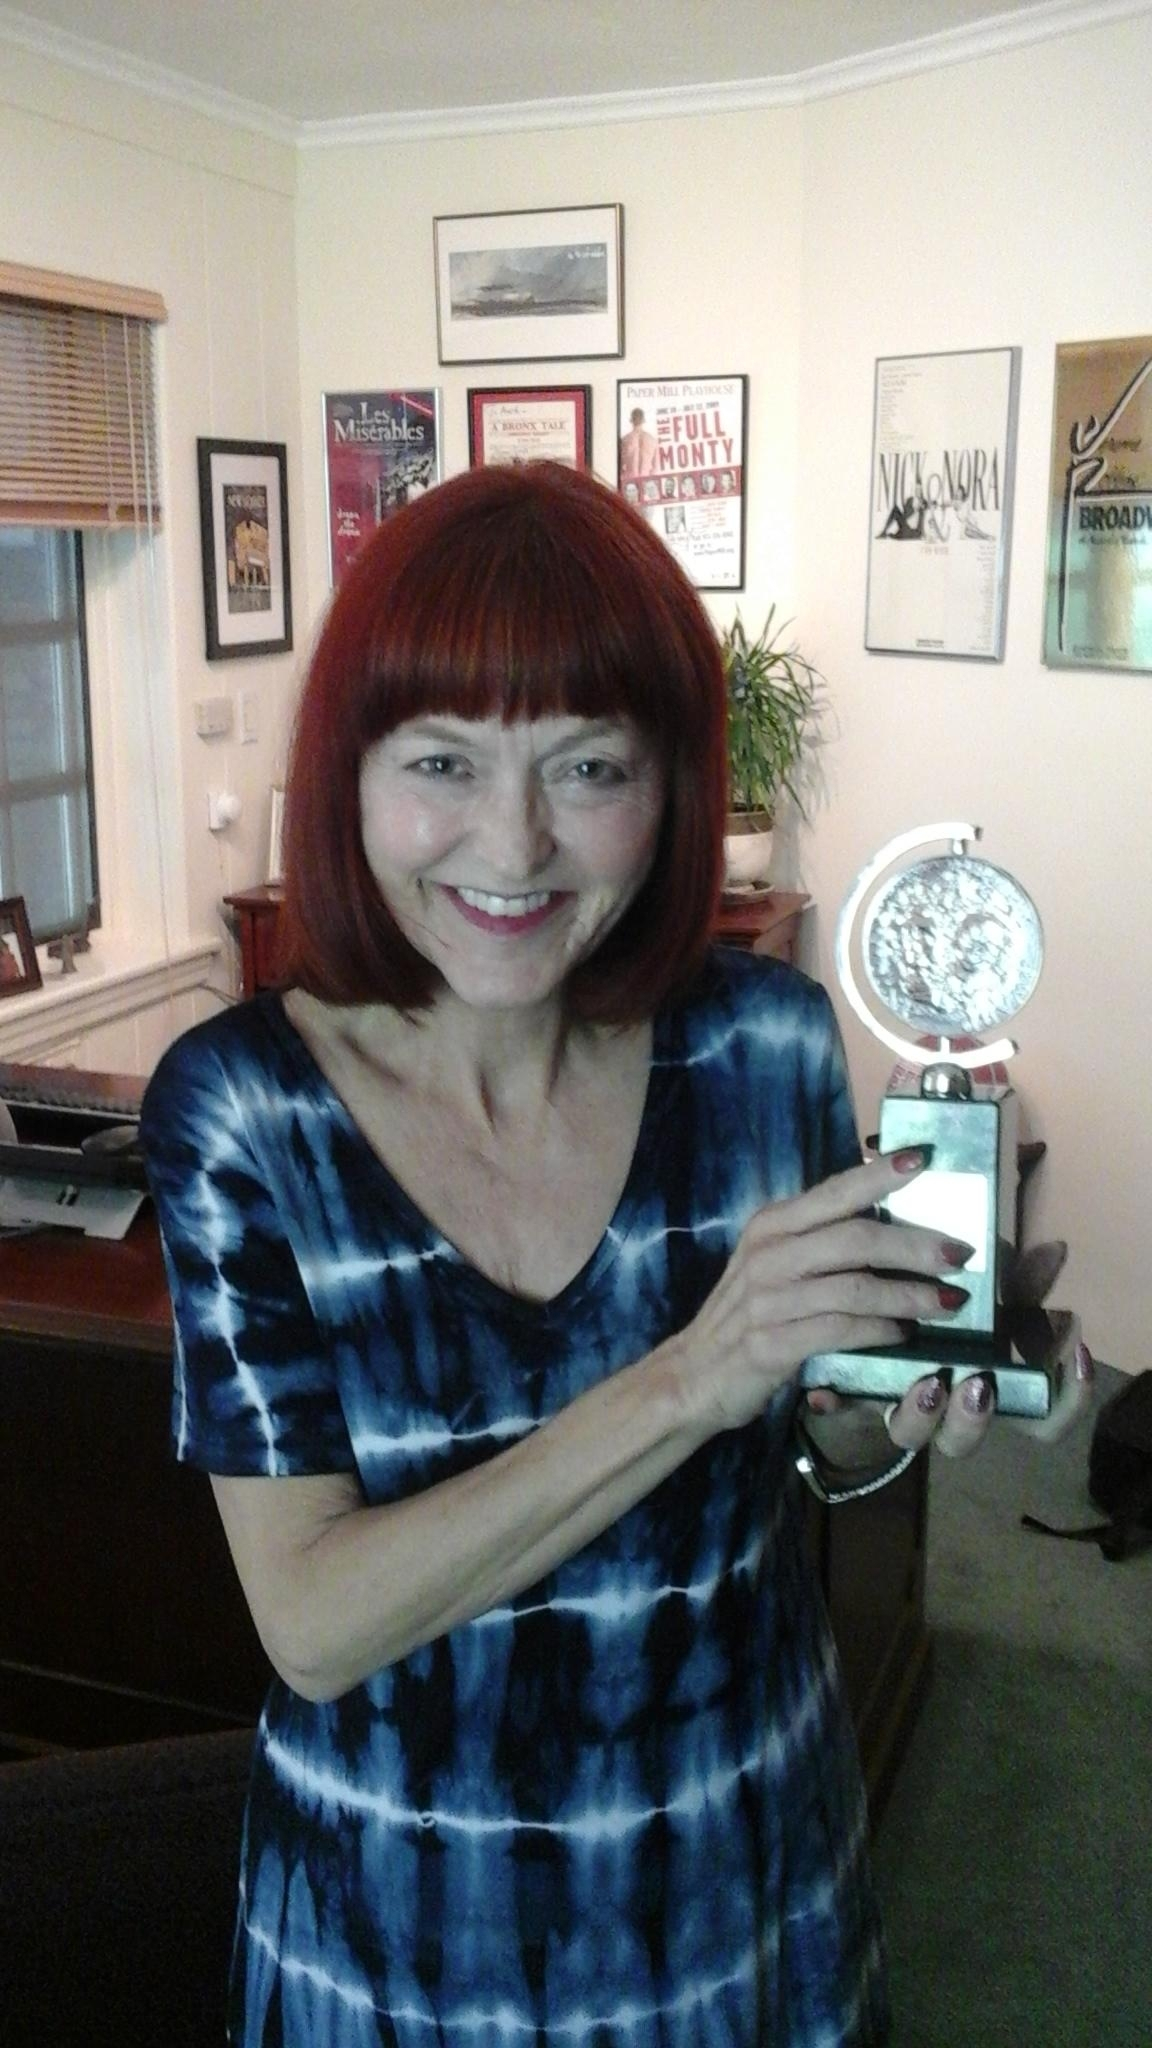 Leslie Fanelli with 2016 Tony Award for Paper Mill Playhouse, where she teaches